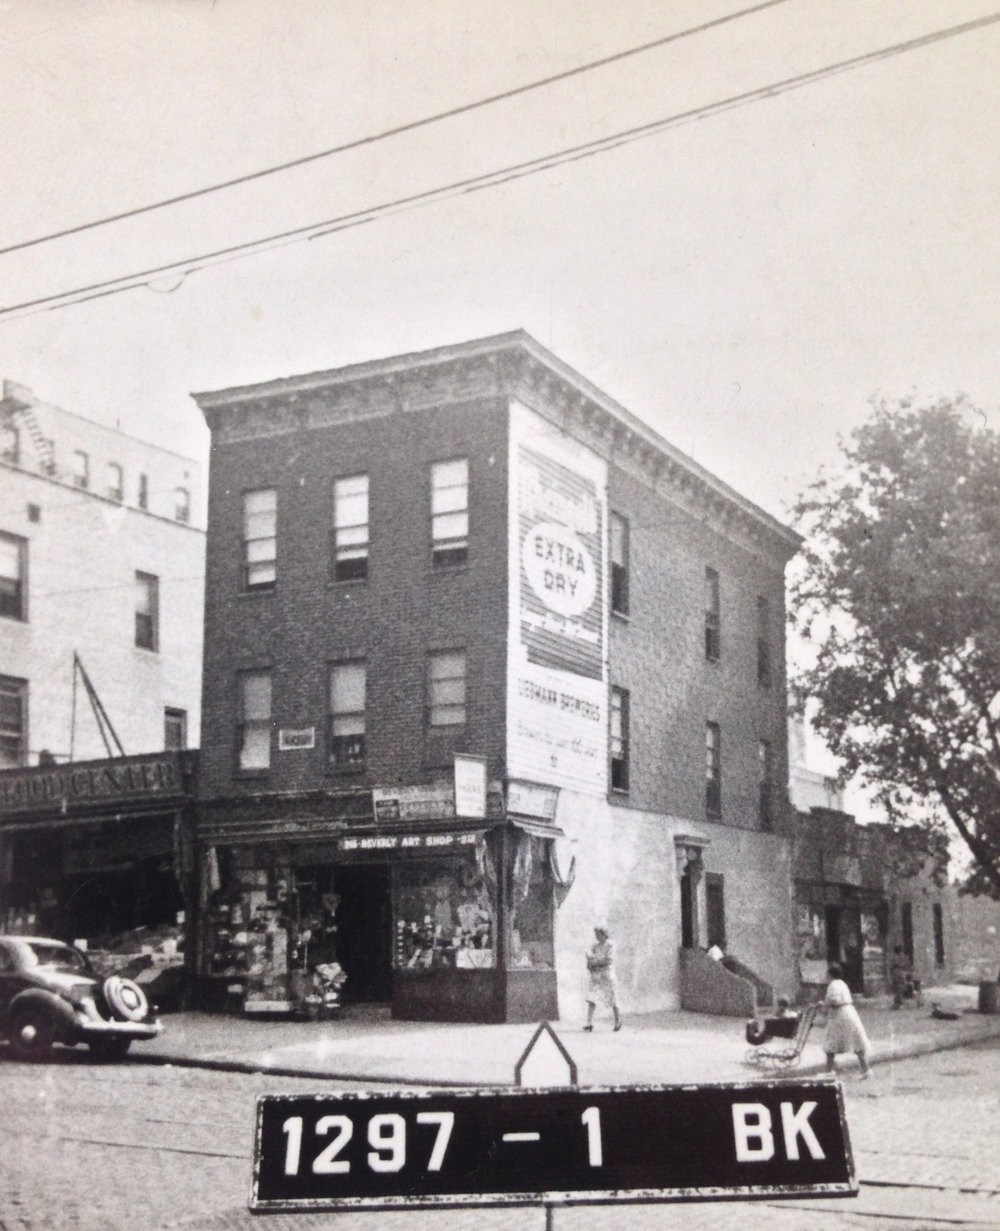 913 Nostrand Ave., early 1940s. Photo: Department of Finance collection, NYC Municipal Archives.